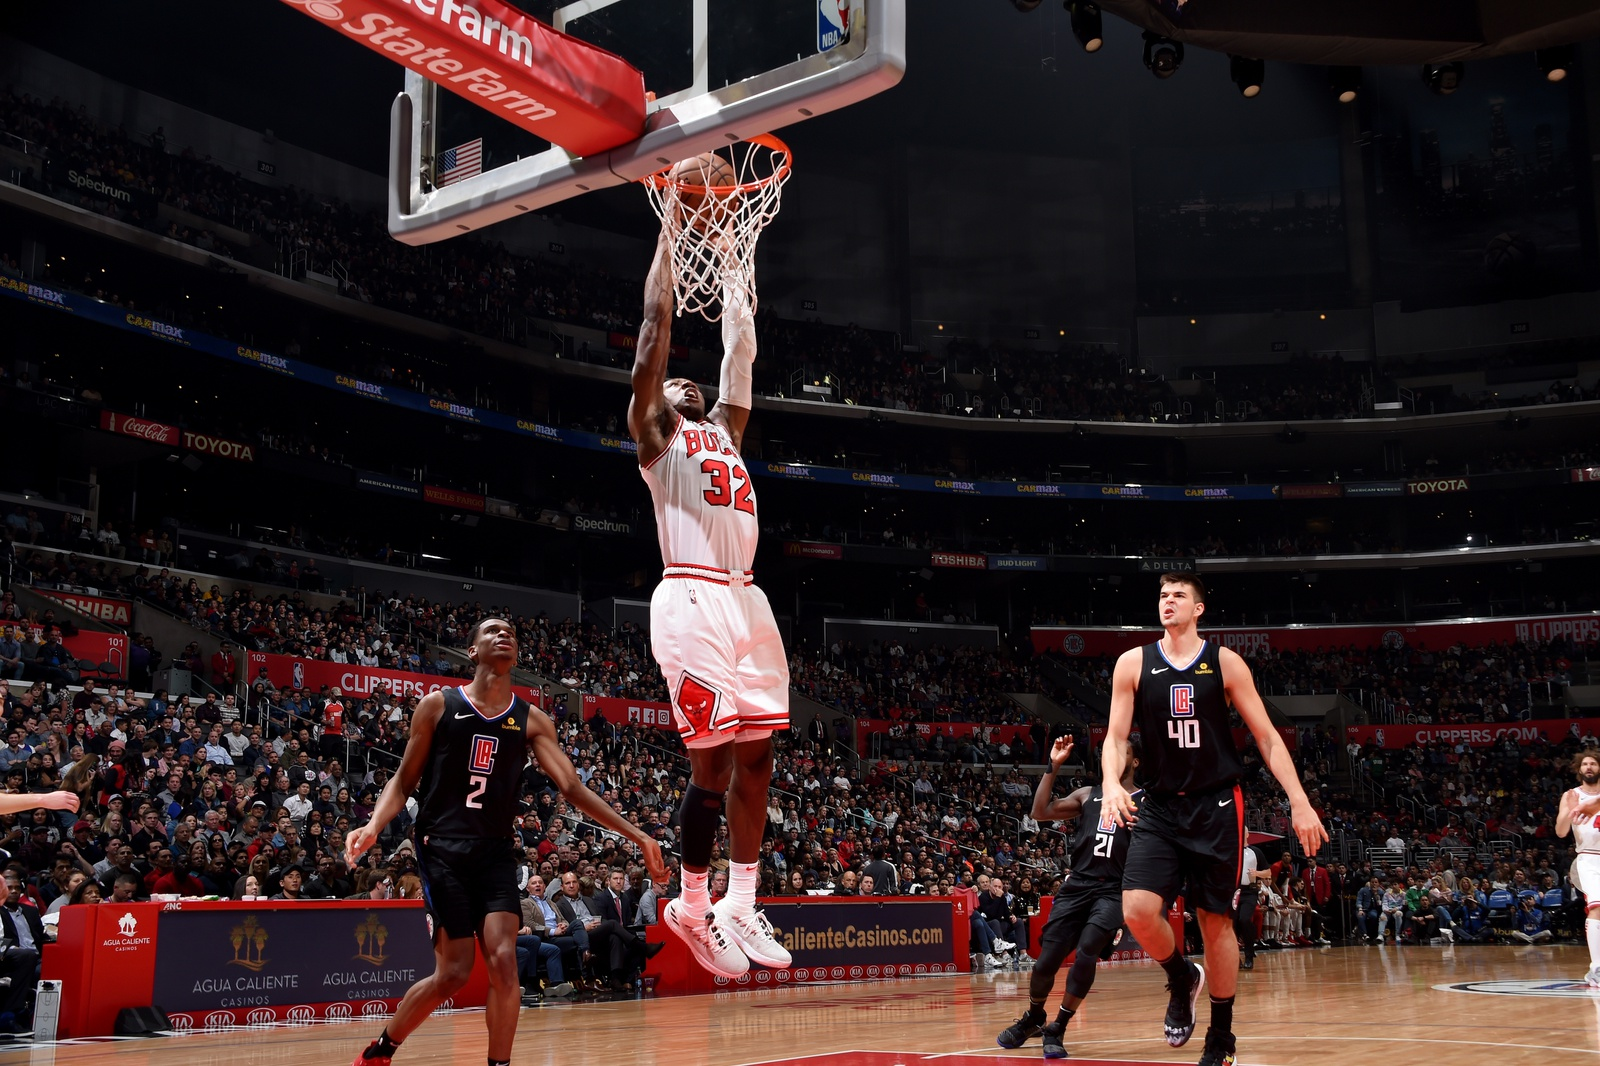 Kris Dunn #32 of the Chicago Bulls dunks the ball during the game against the LA Clippers on March 15, 2019 at STAPLES Center in Los Angeles, California.